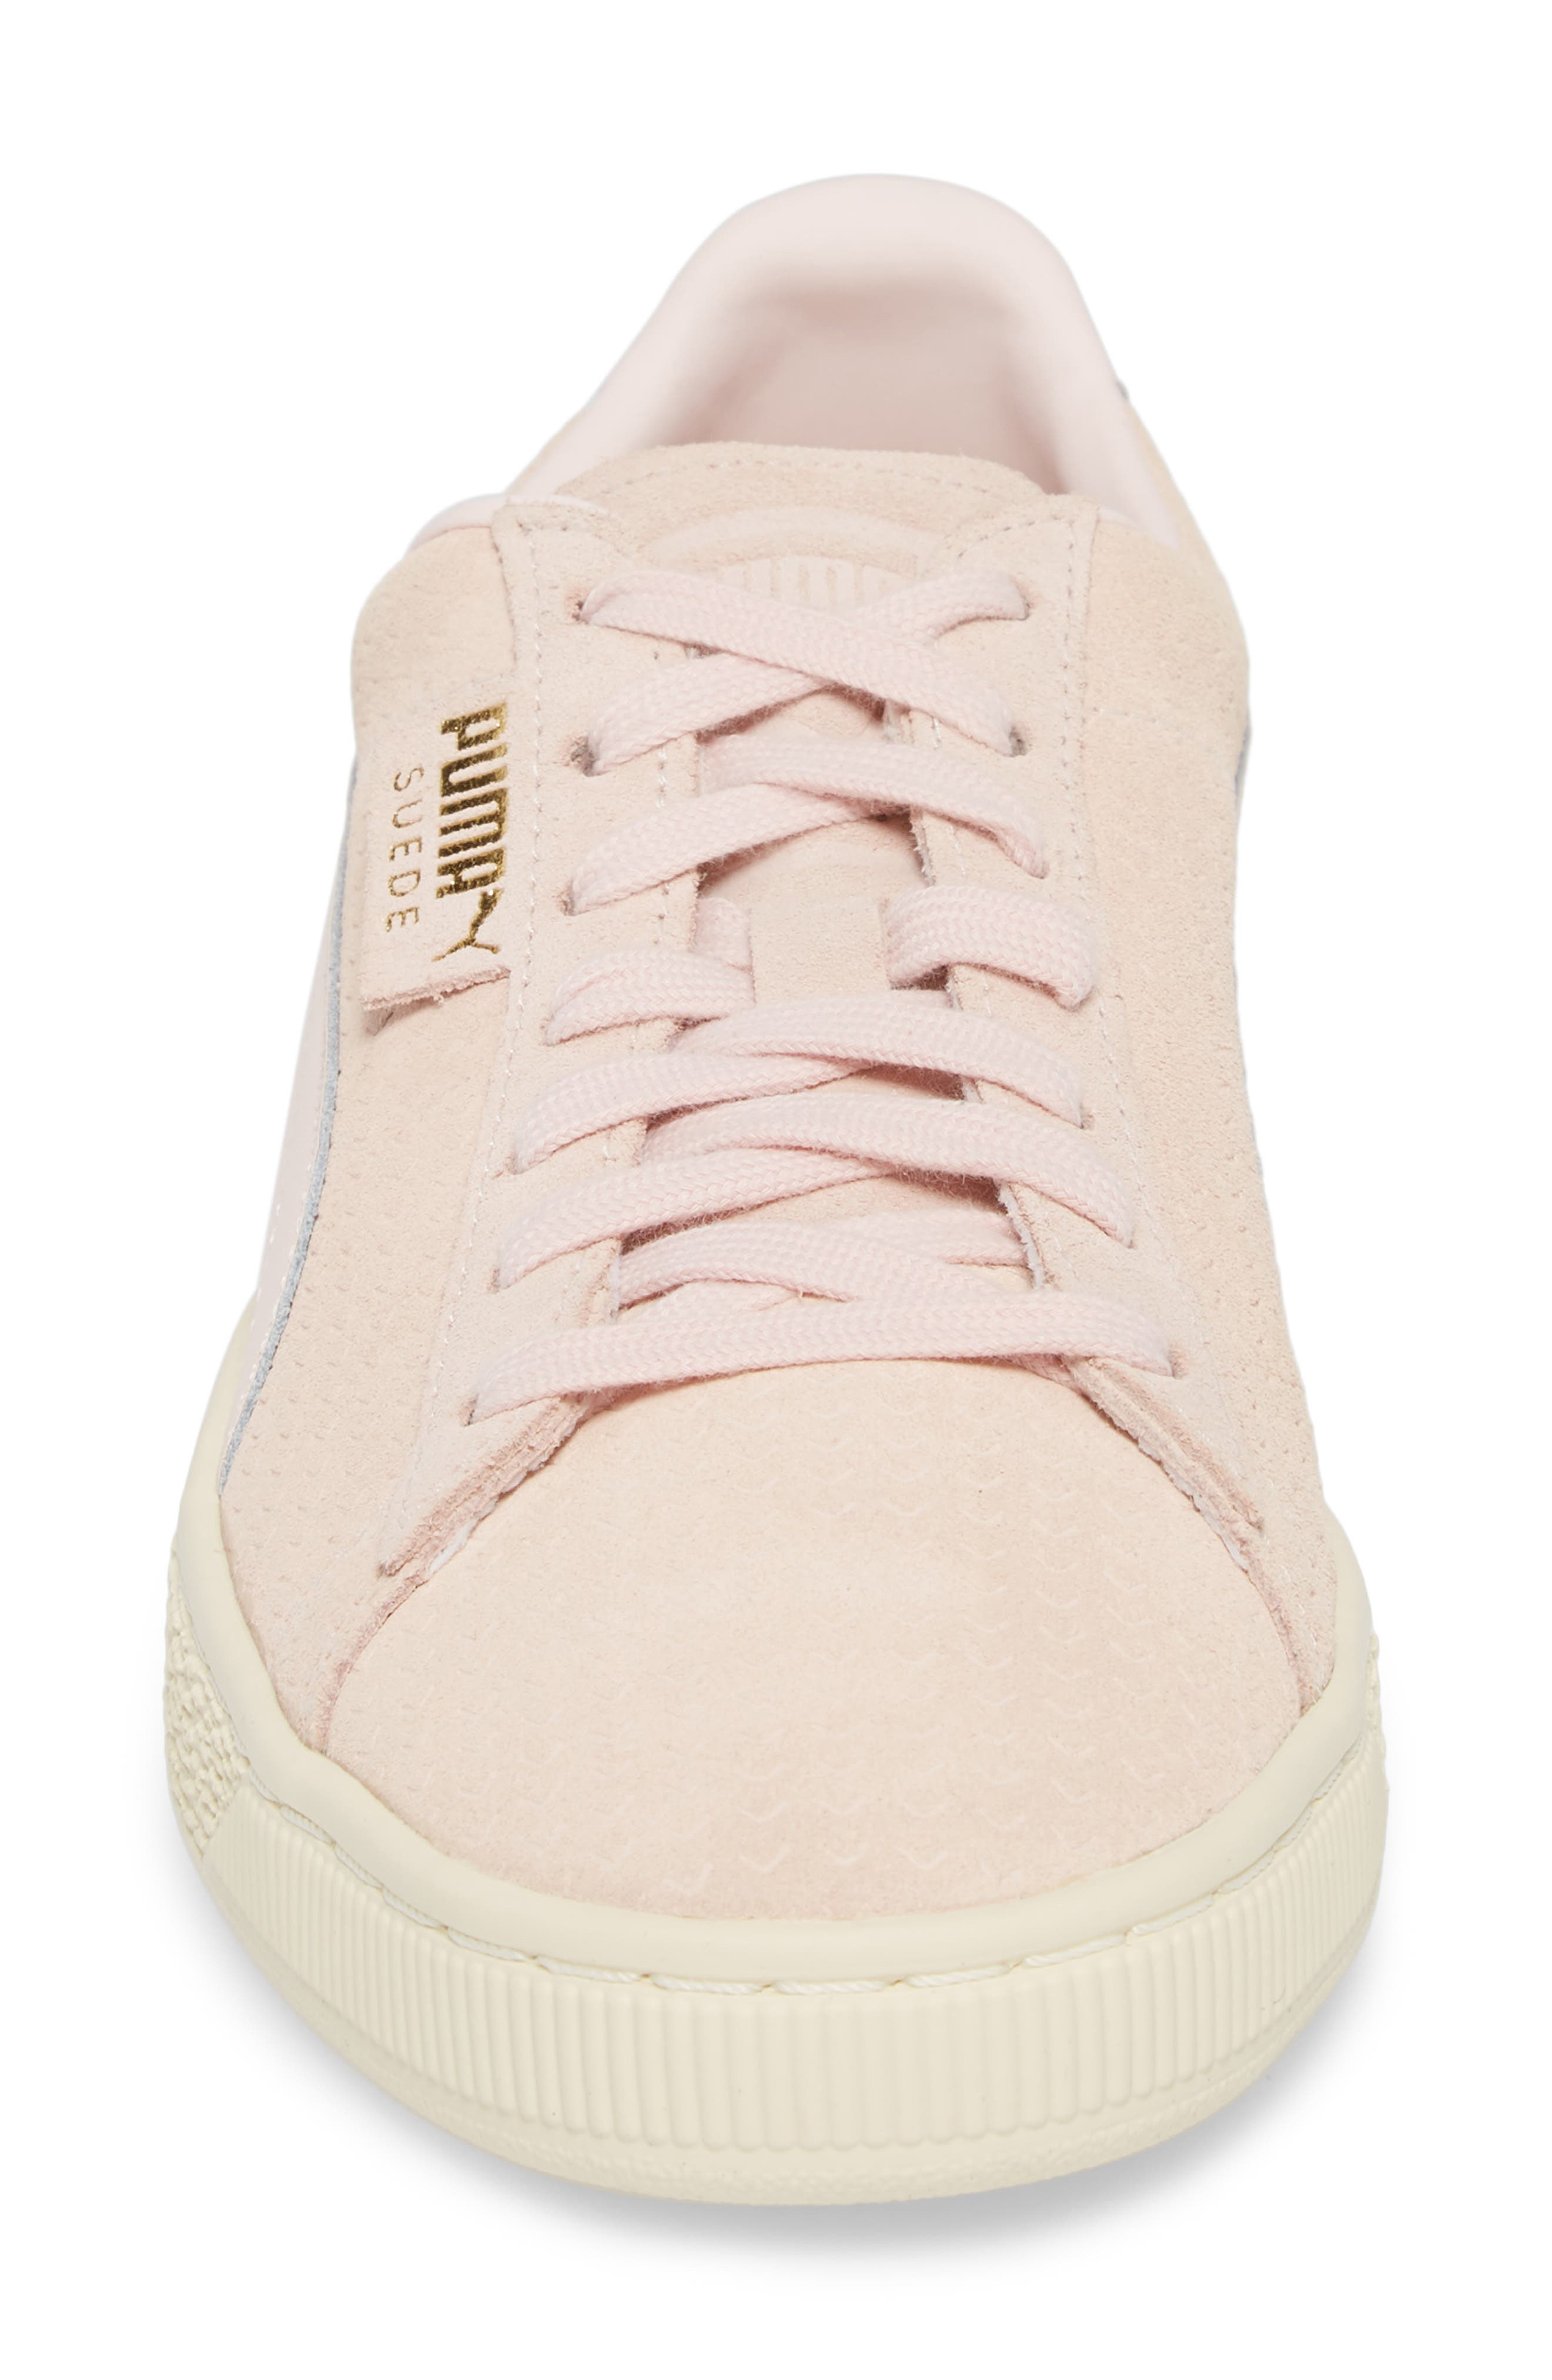 Suede Classic Perforation Sneaker,                             Alternate thumbnail 4, color,                             Pearl/ Whisper White Suede